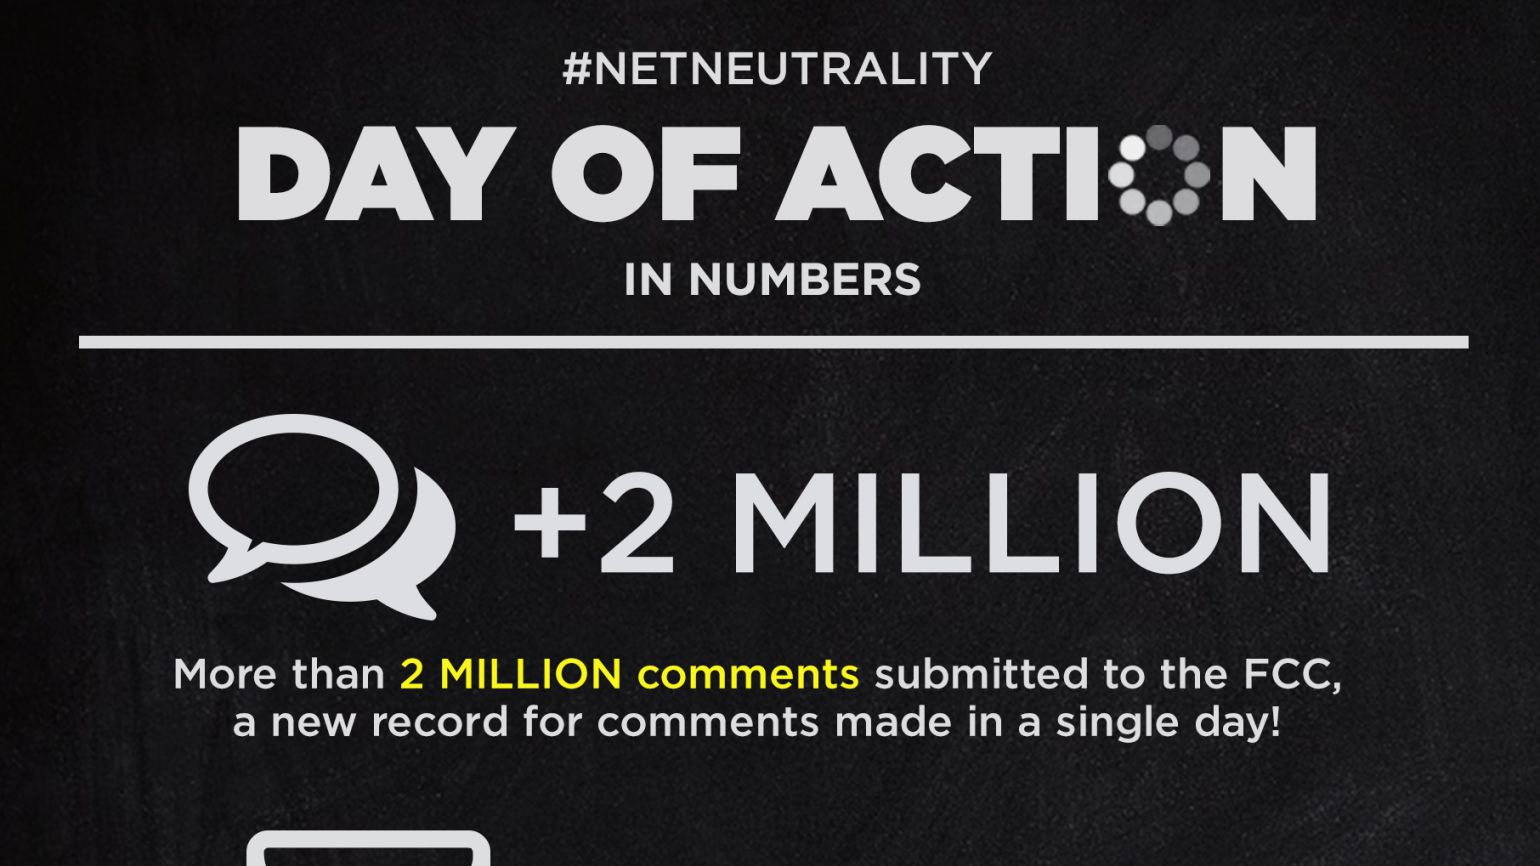 Net Neutrality Day of Action, By the Numbers